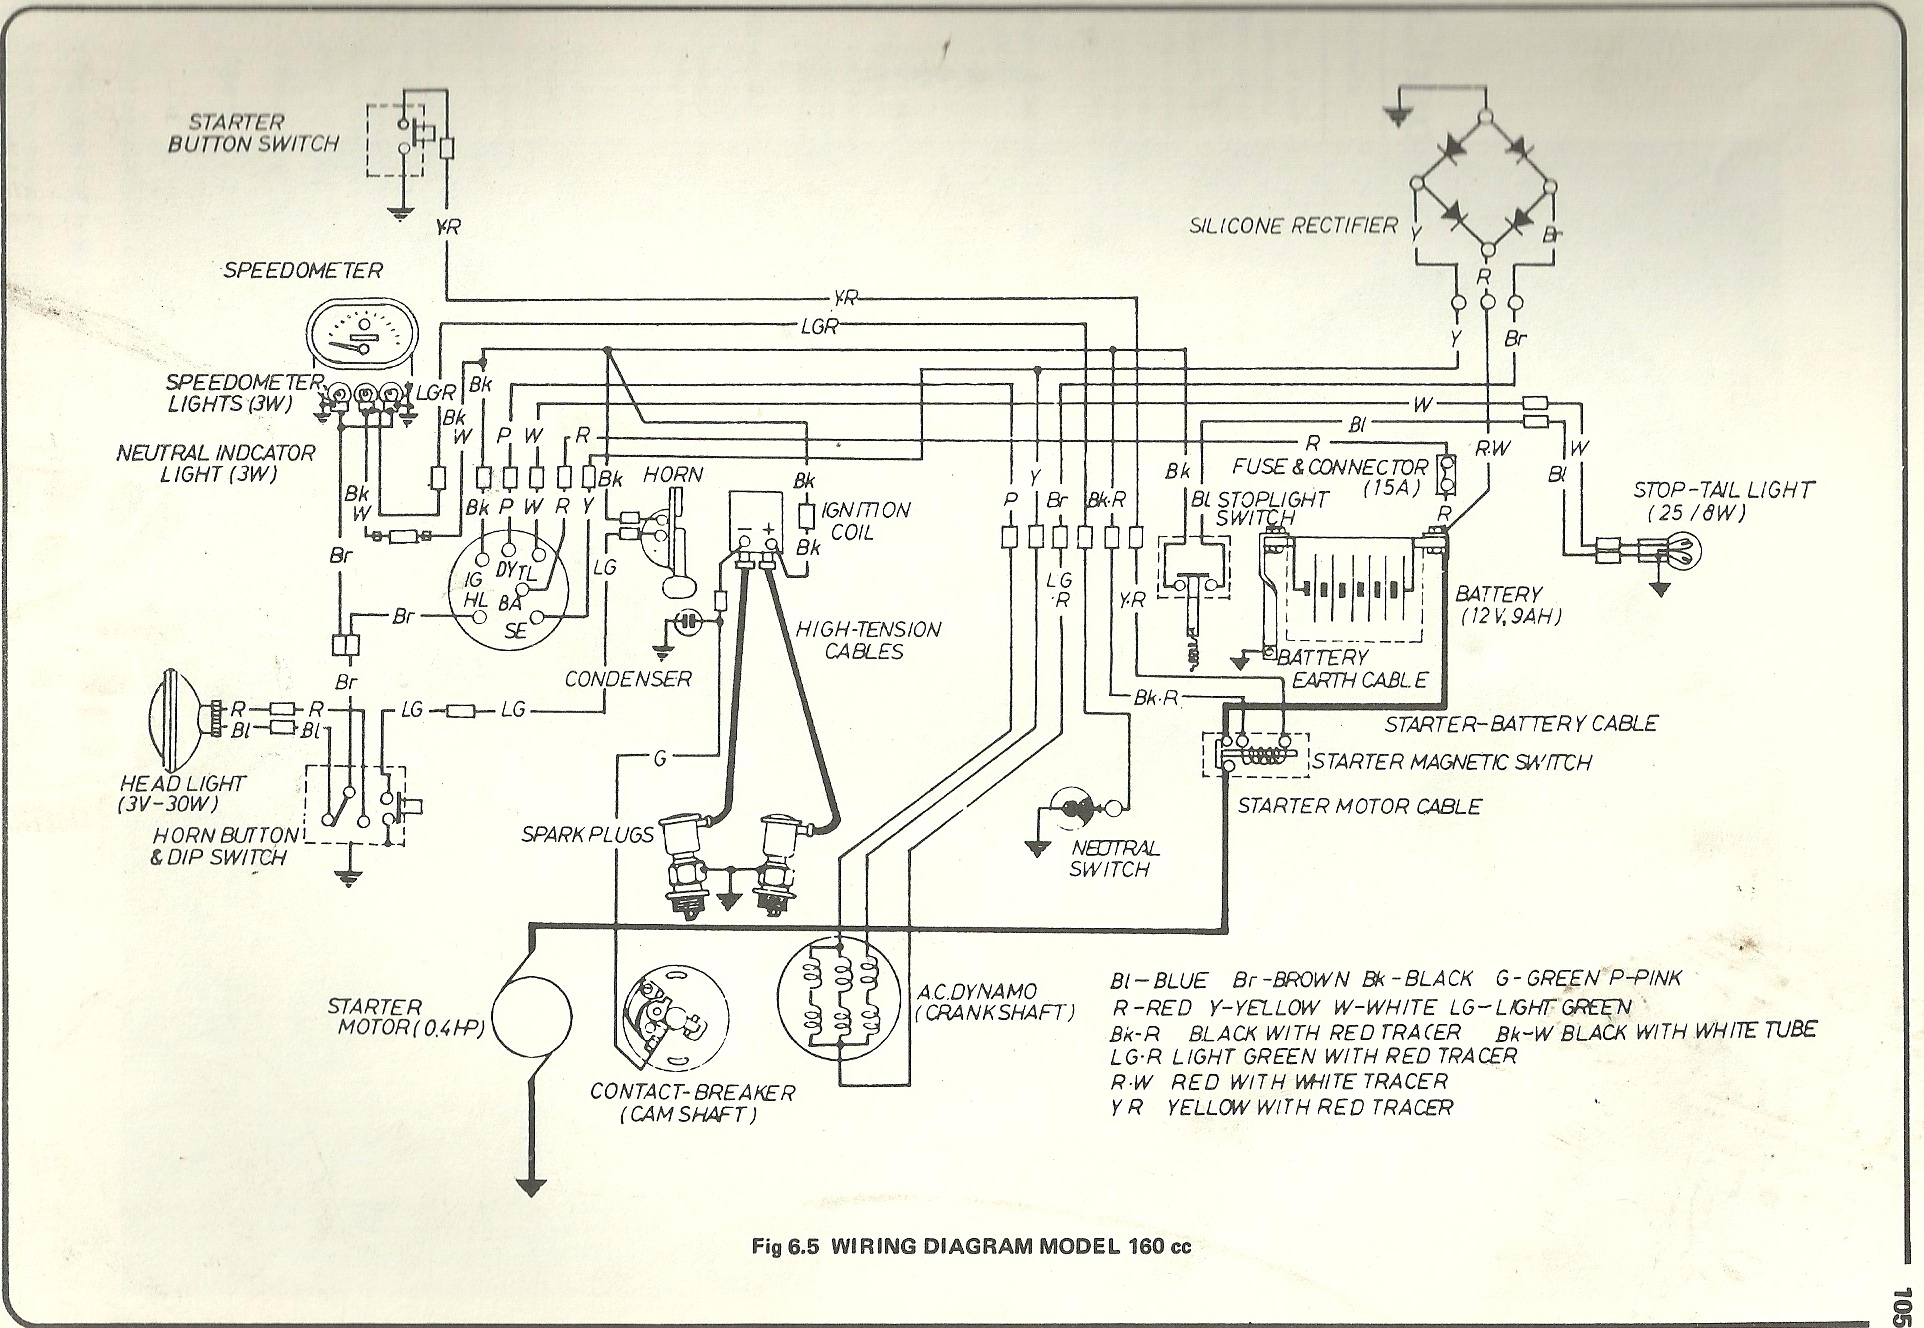 Cb750 Regulator Rectifier Wiring Diagram Libraries Schematic Motorcycle 2 Dohc Limited Trusted Diagramwiring Diagrams